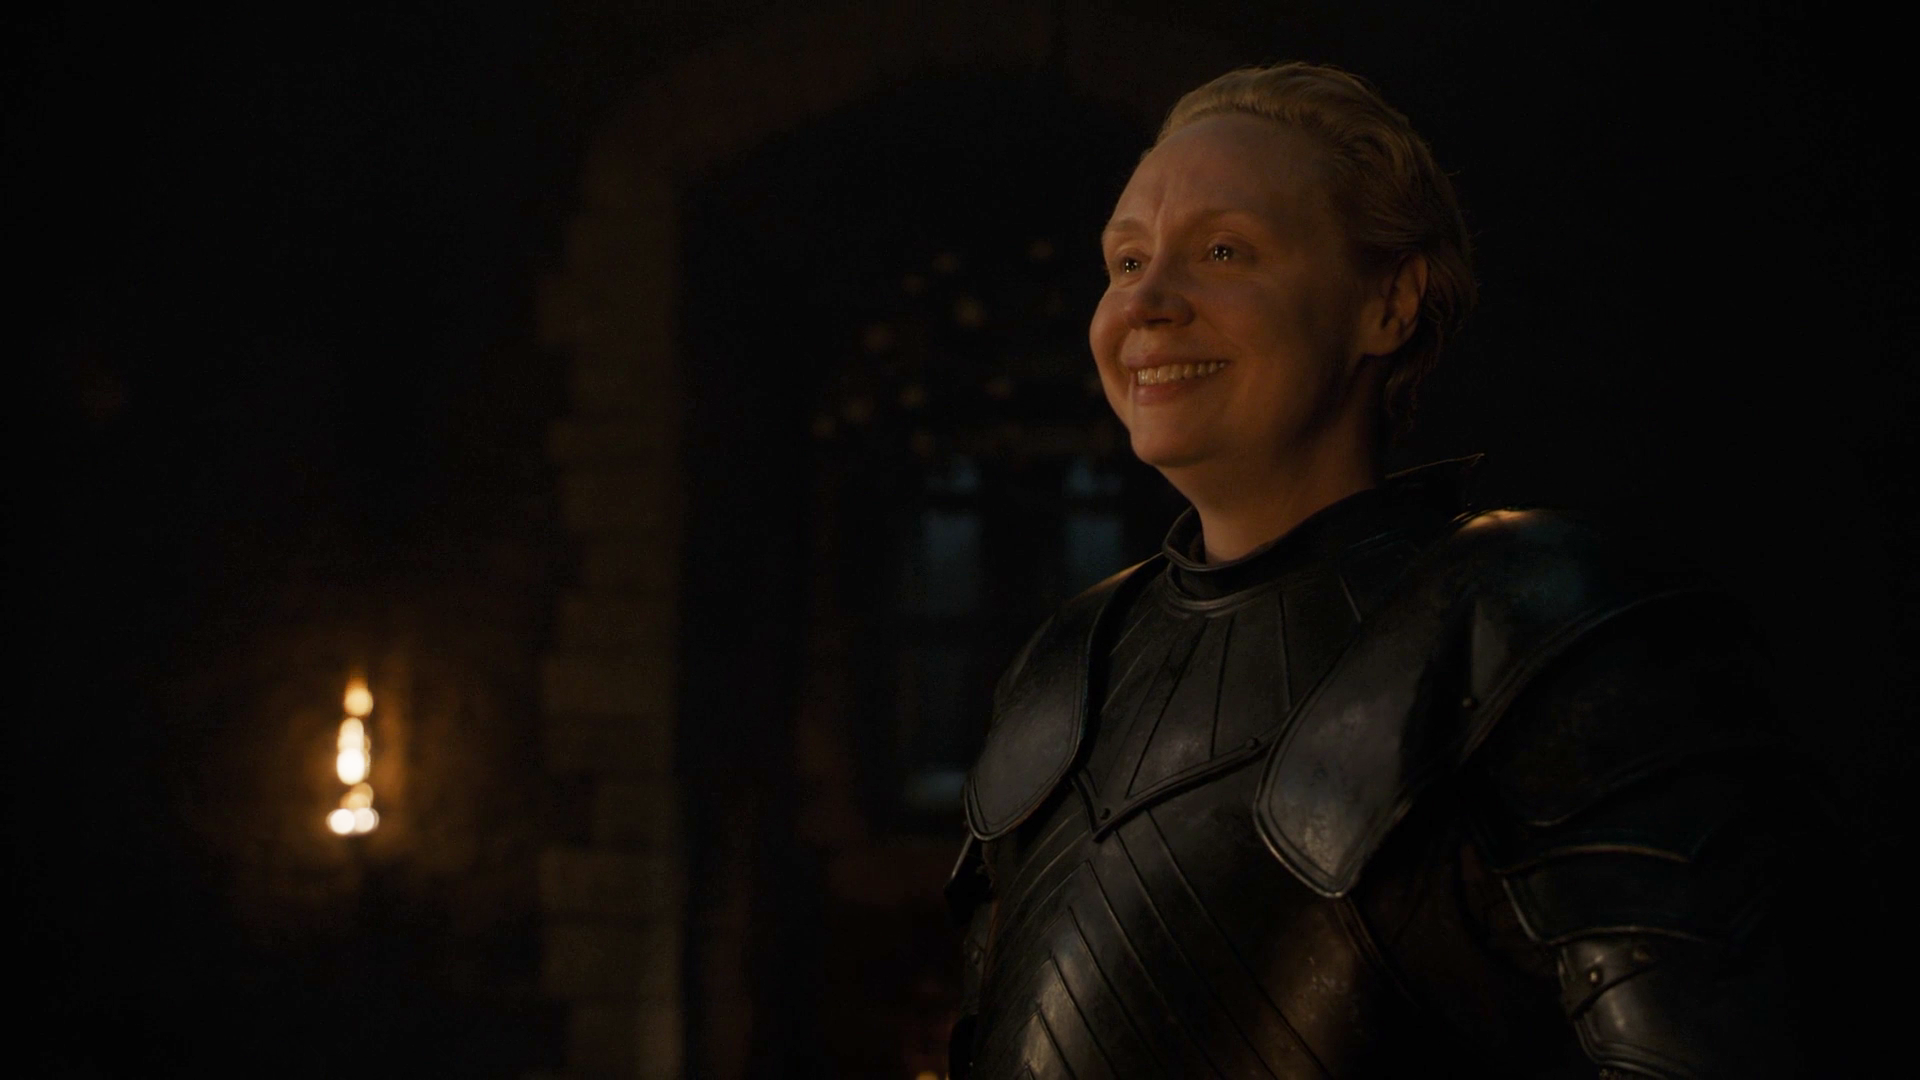 Brienne of Tarth Knight of the Seven Kingdoms Season 8 802